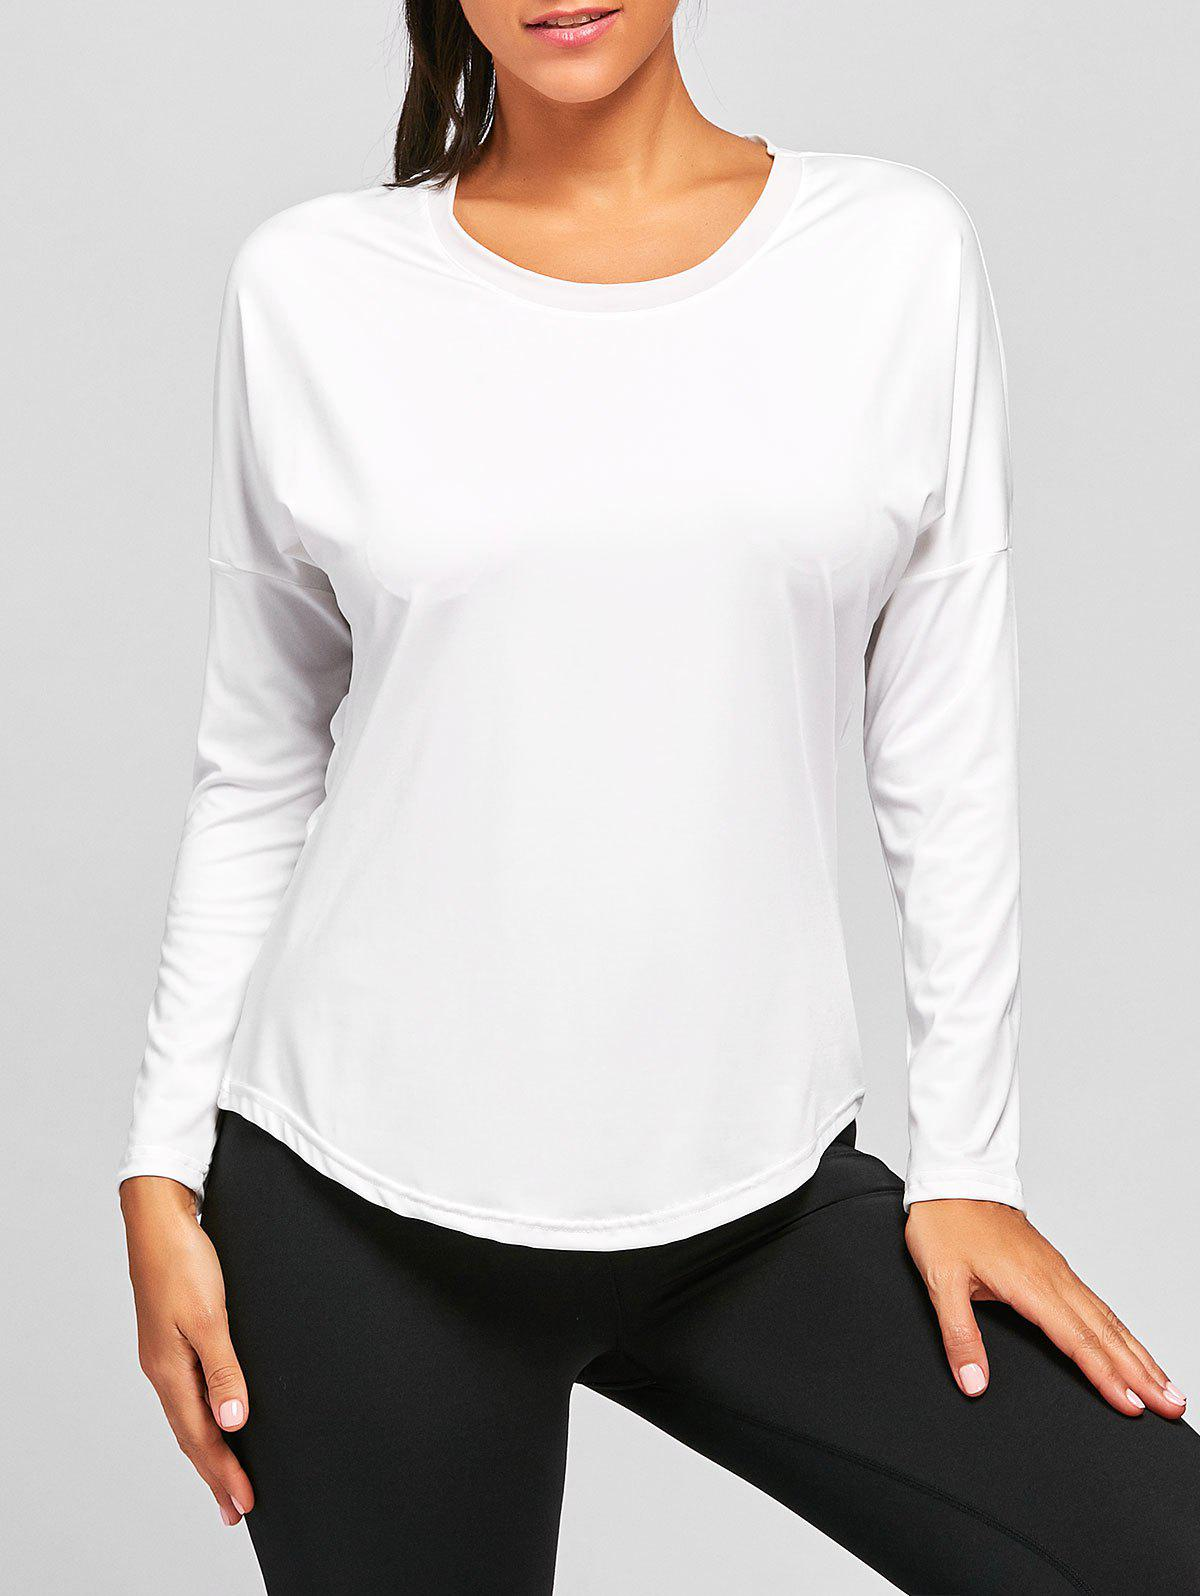 See Through Sports Long Sleeve T-shirt - WHITE S